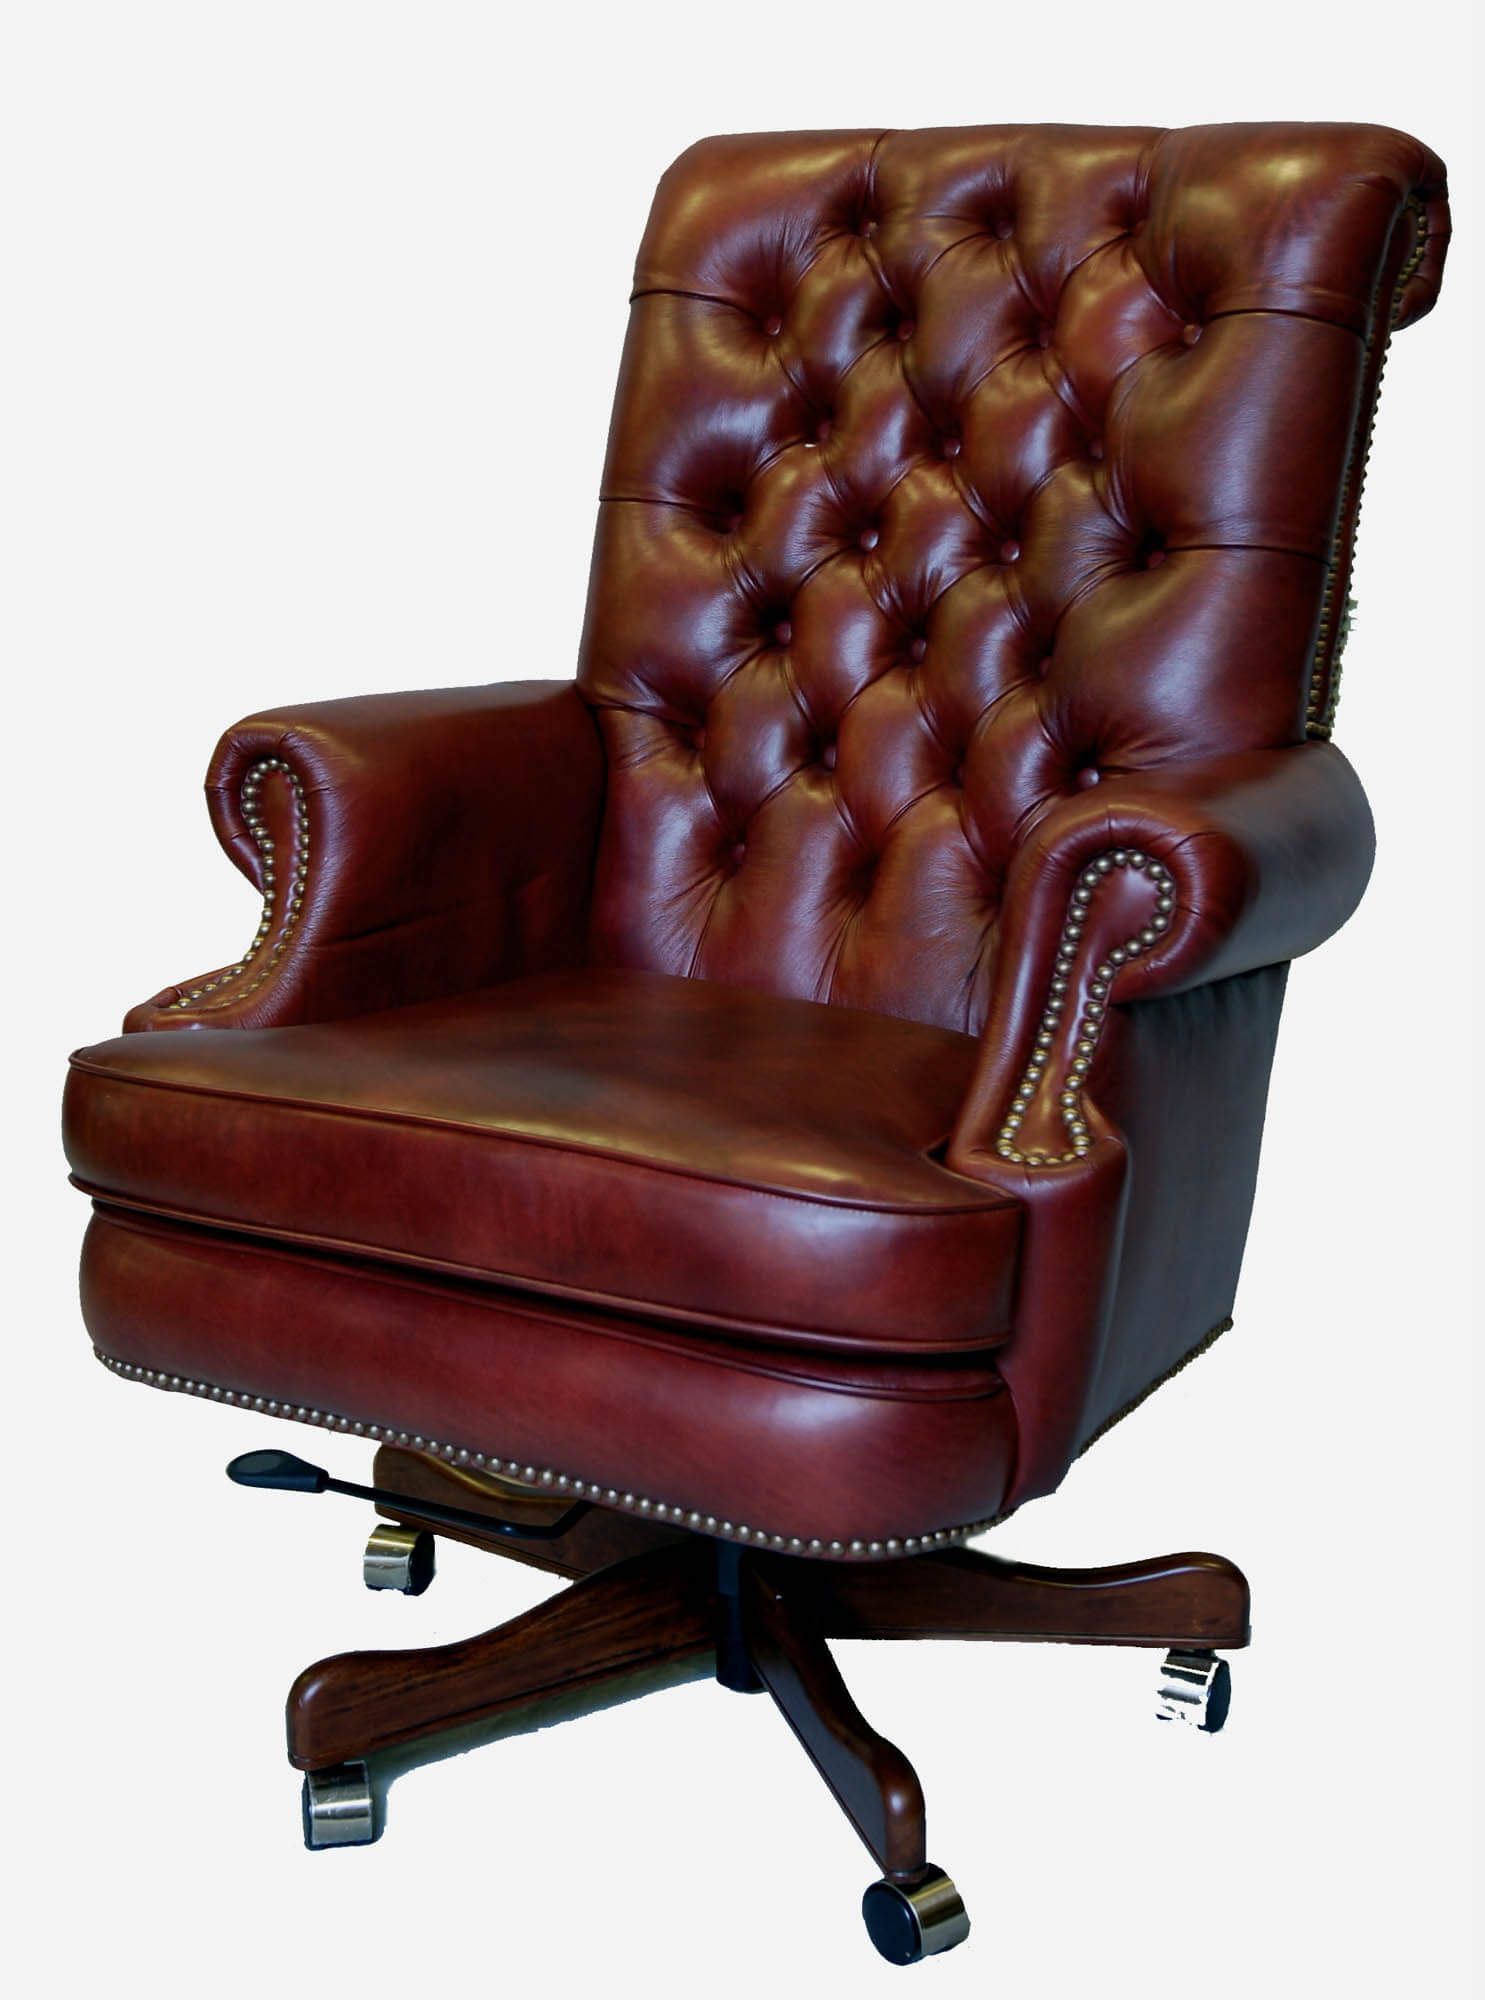 Executive Leather Chair Luxury The Executive Chair May Look Executive Office Chair In 2019